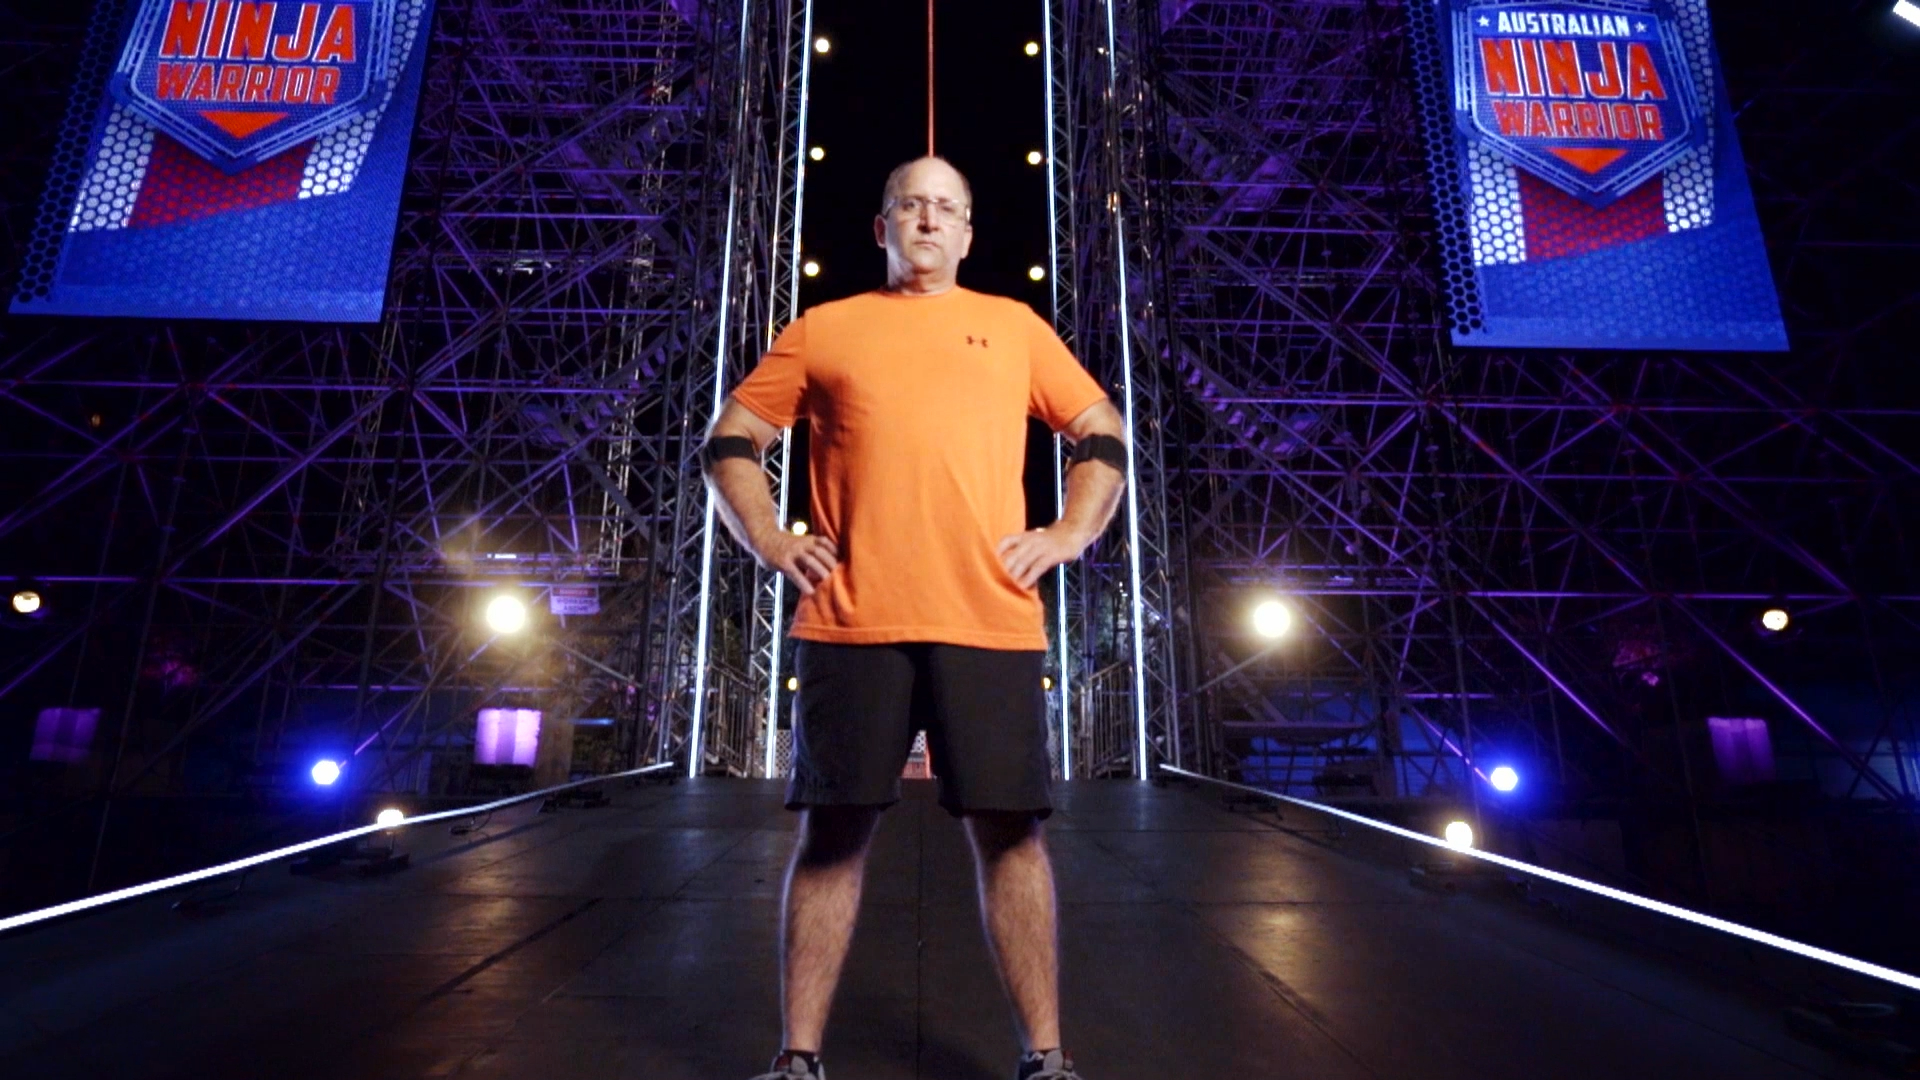 Unseen run: Bryson Klein's dad Matthew runs the Ninja Warrior course